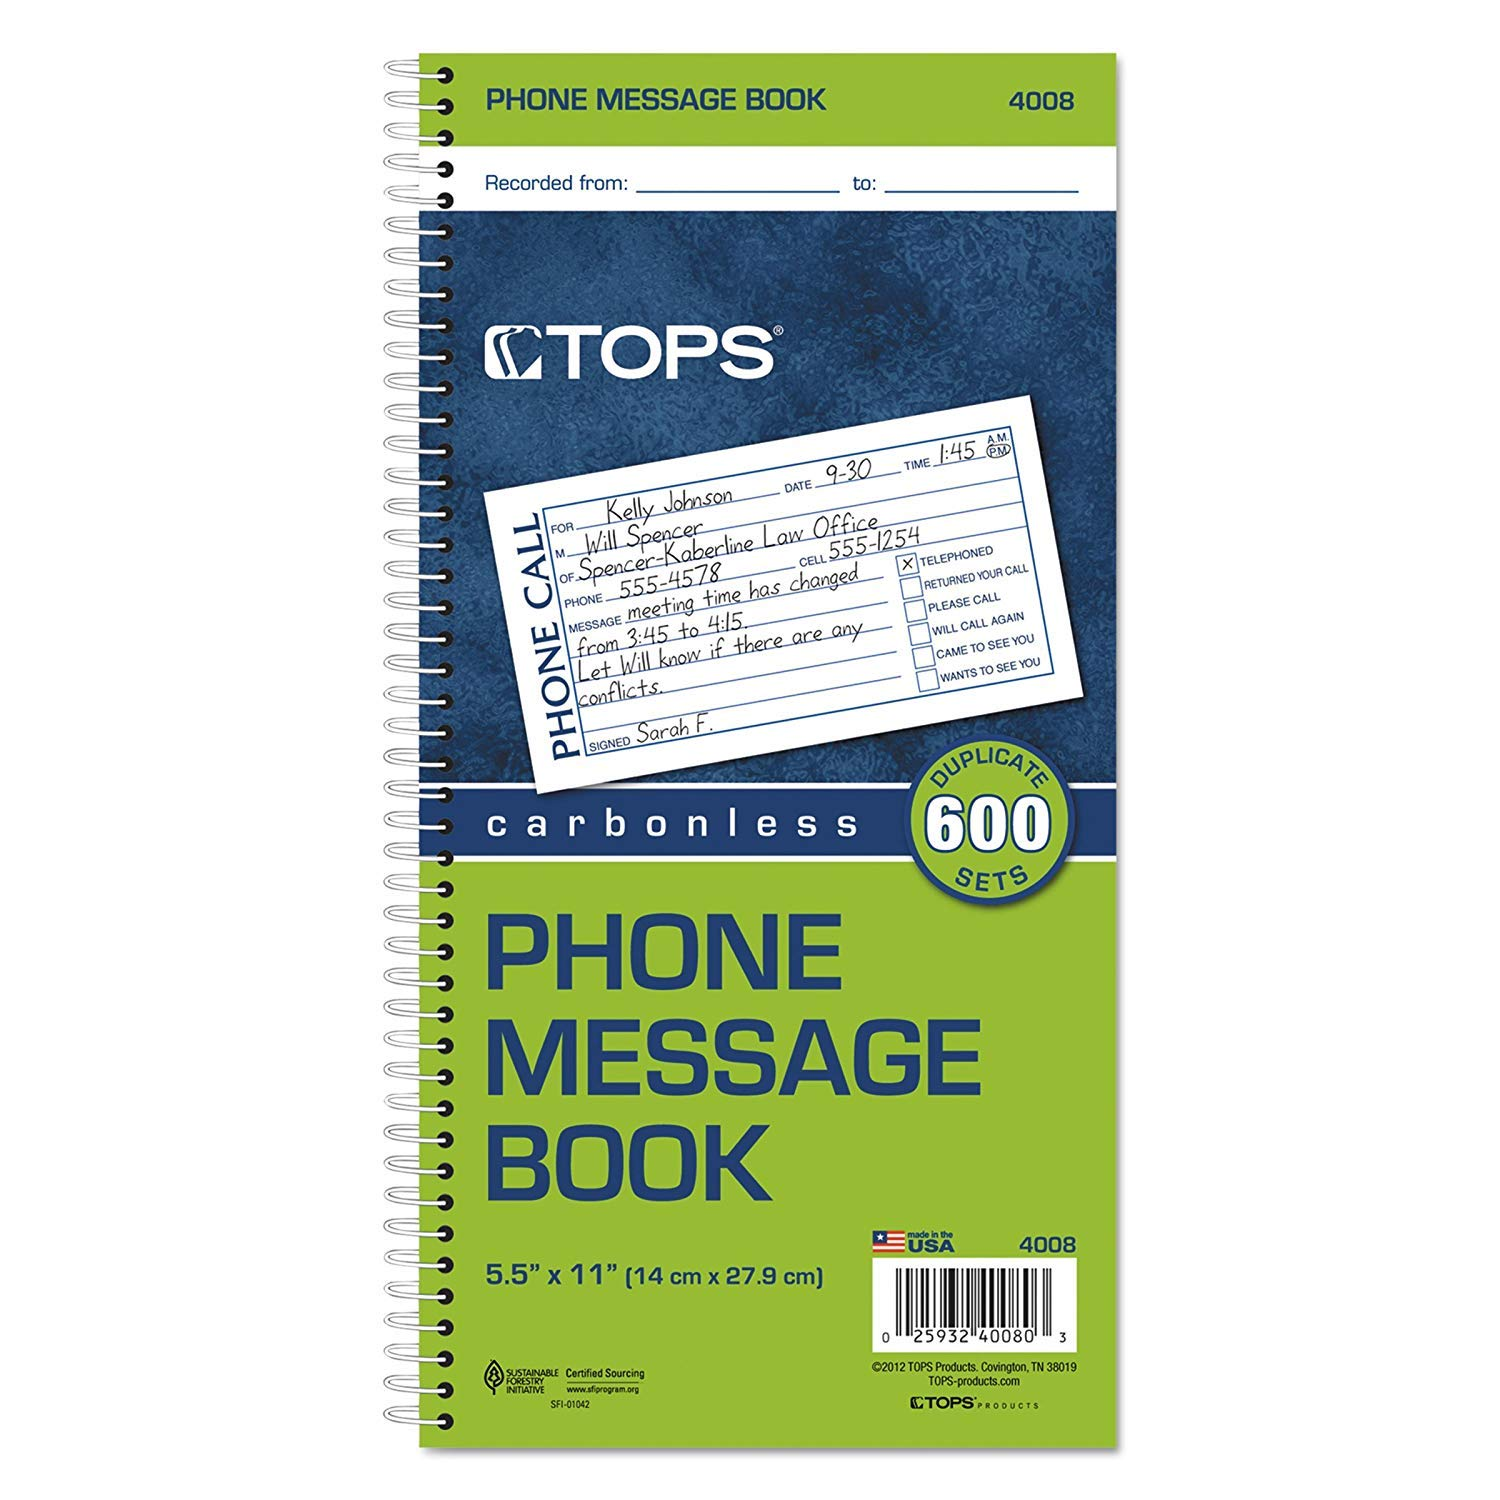 TOPS Message/While You were Out Carbonless Duplicate, 5.5 x 11 Inches, 600-Set Book (4008), Pack of 14 by TOPS